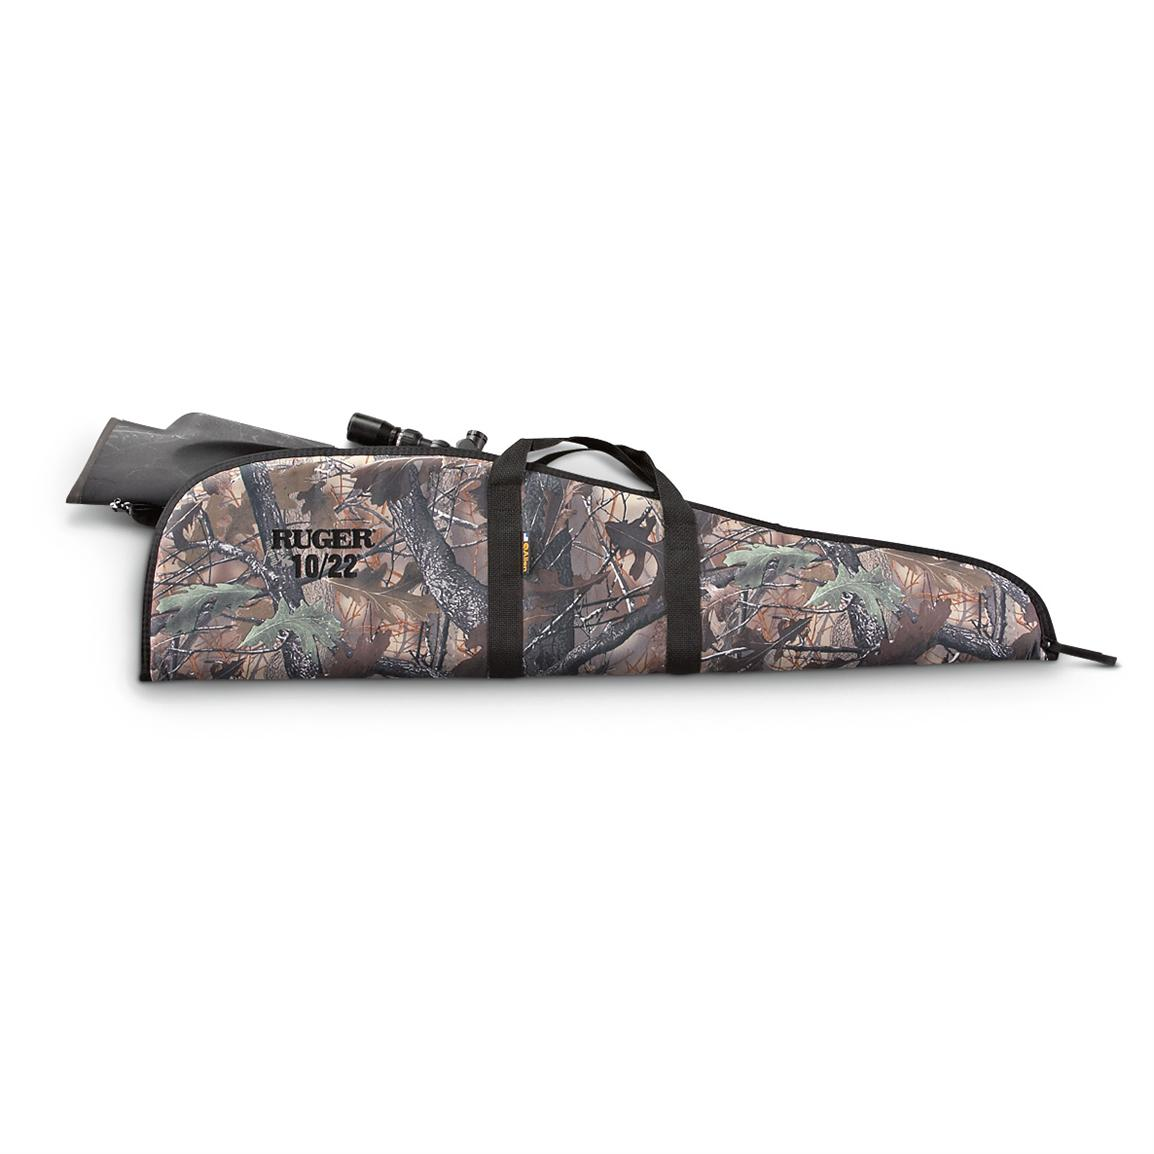 Ruger® 10/22® Camo Rifle Case